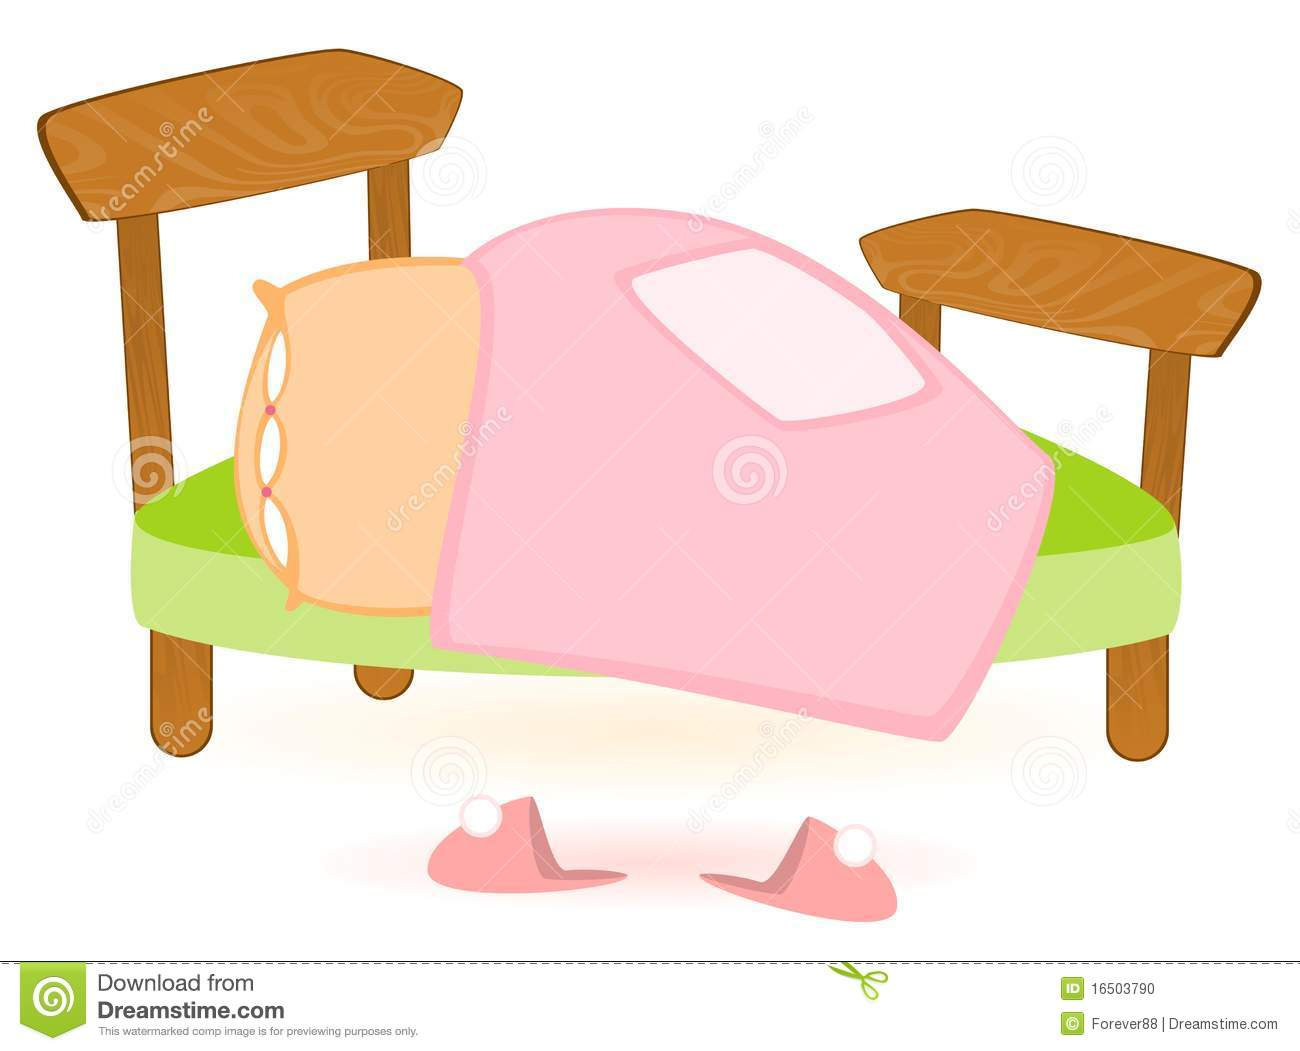 Cartoon bed with a blanket and pillow, pink slippers.